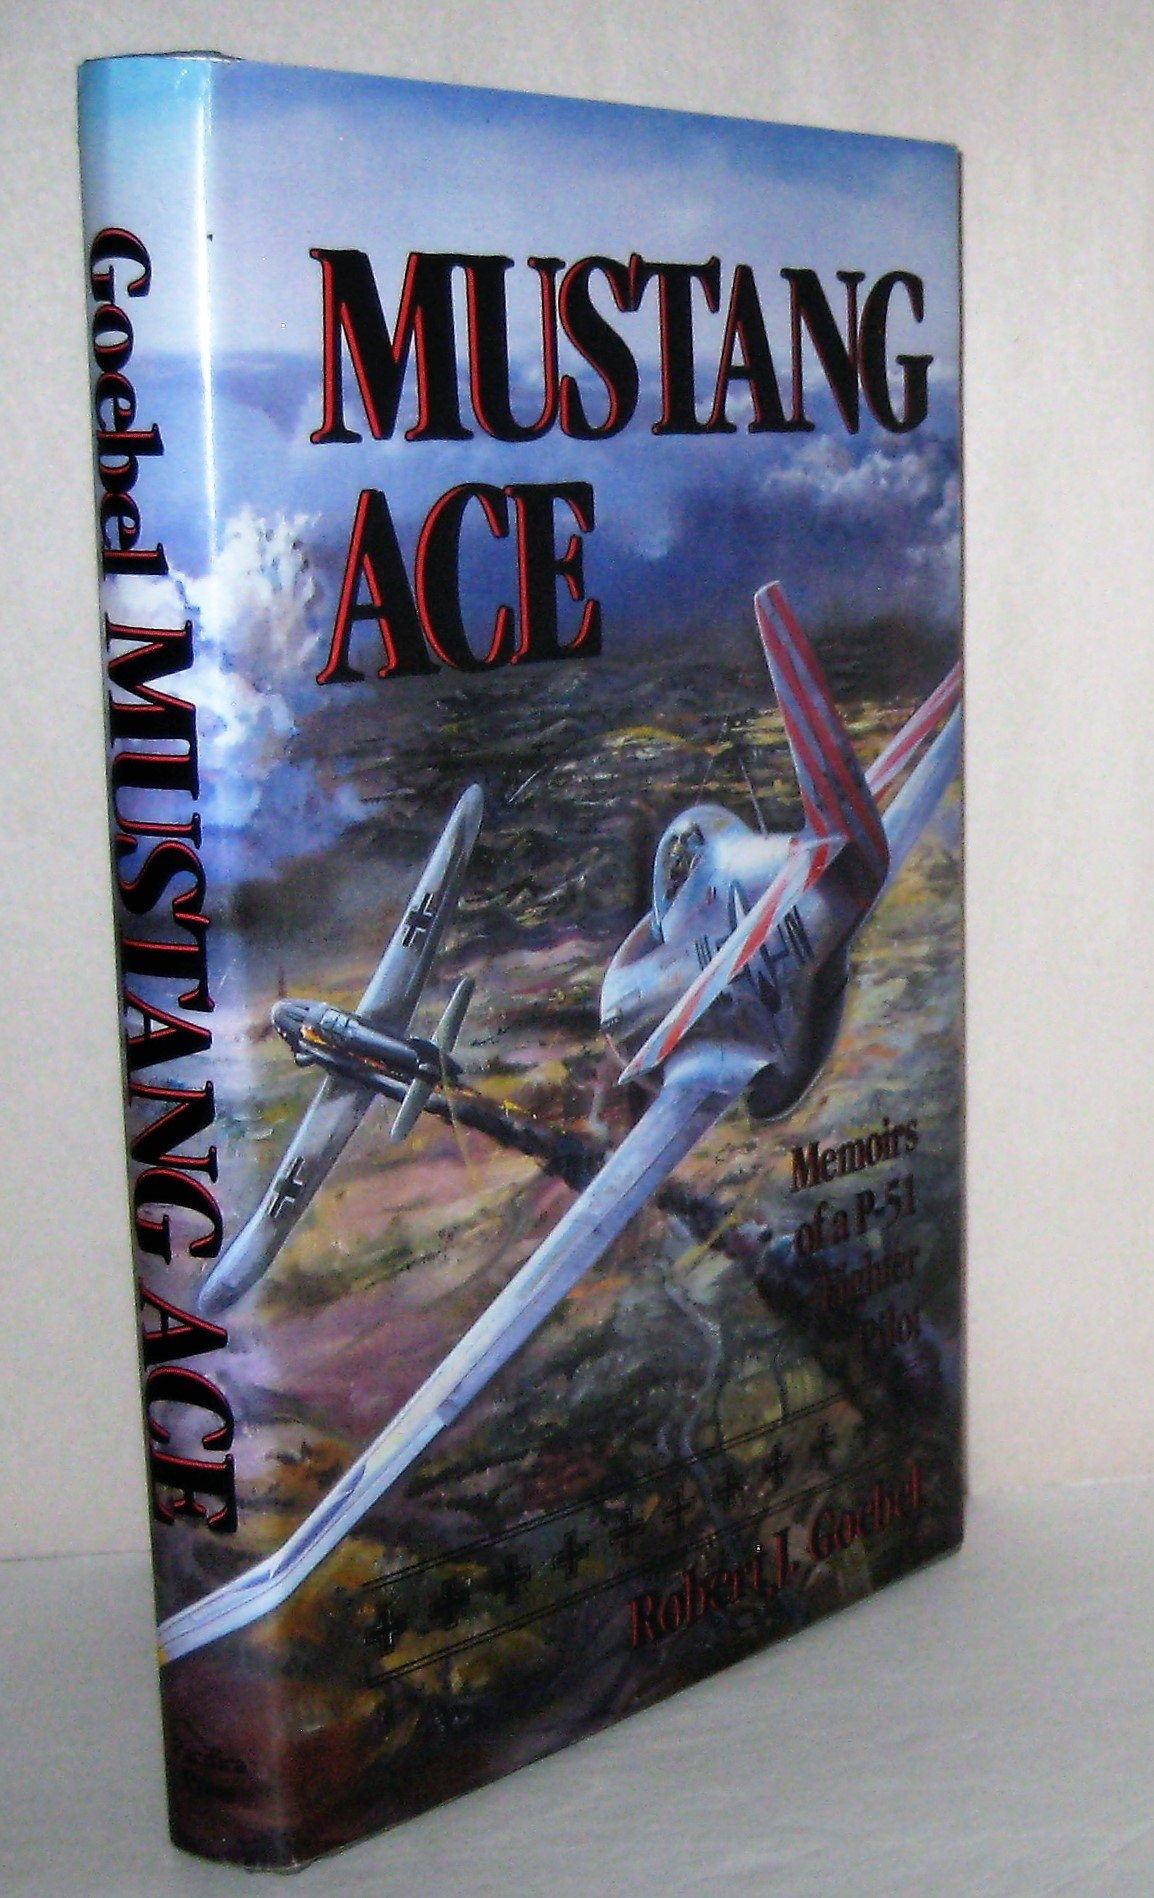 Download Mustang Ace: Memoirs of a P-51 Fighter Pilot pdf